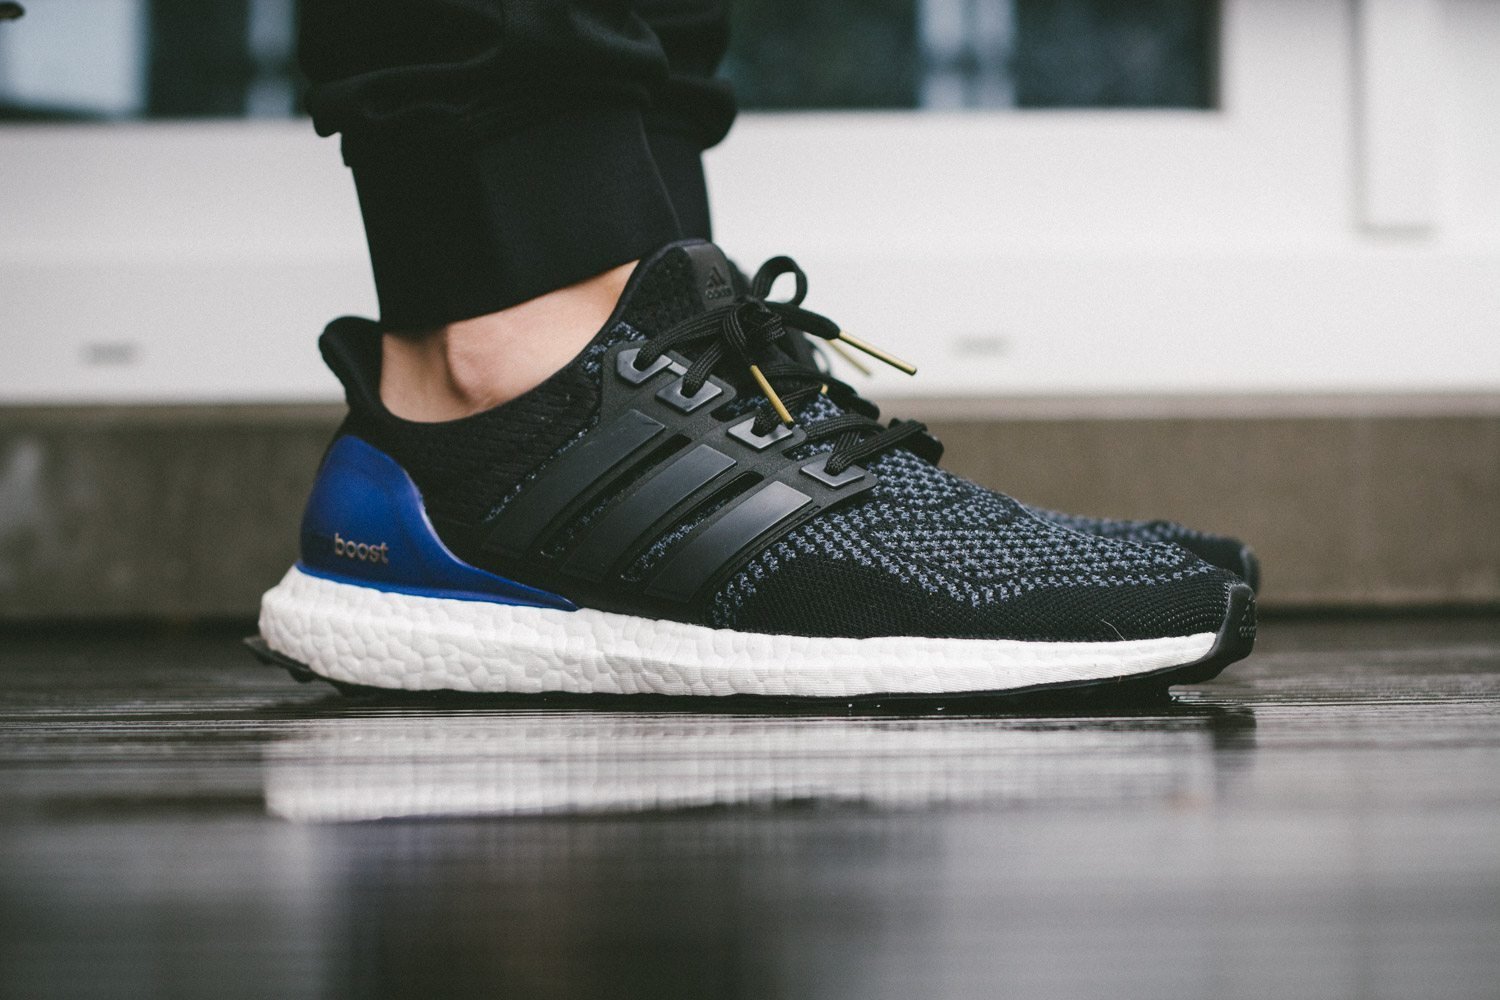 999b6148d low price black and blue adidas ultra boost 4aa73 4ef79